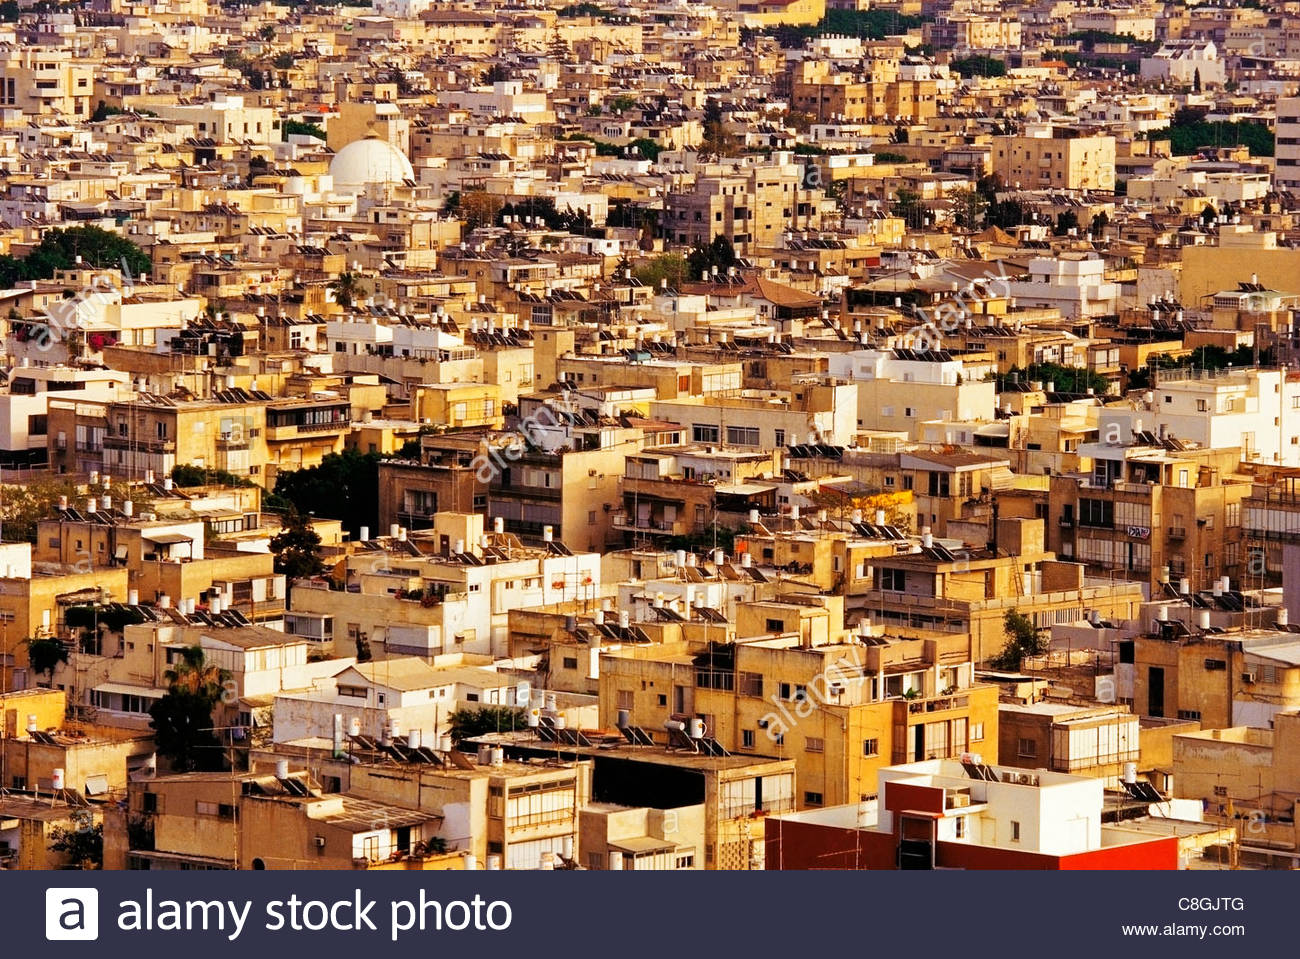 An overall view of residential areas in the center of the city. - Stock Image